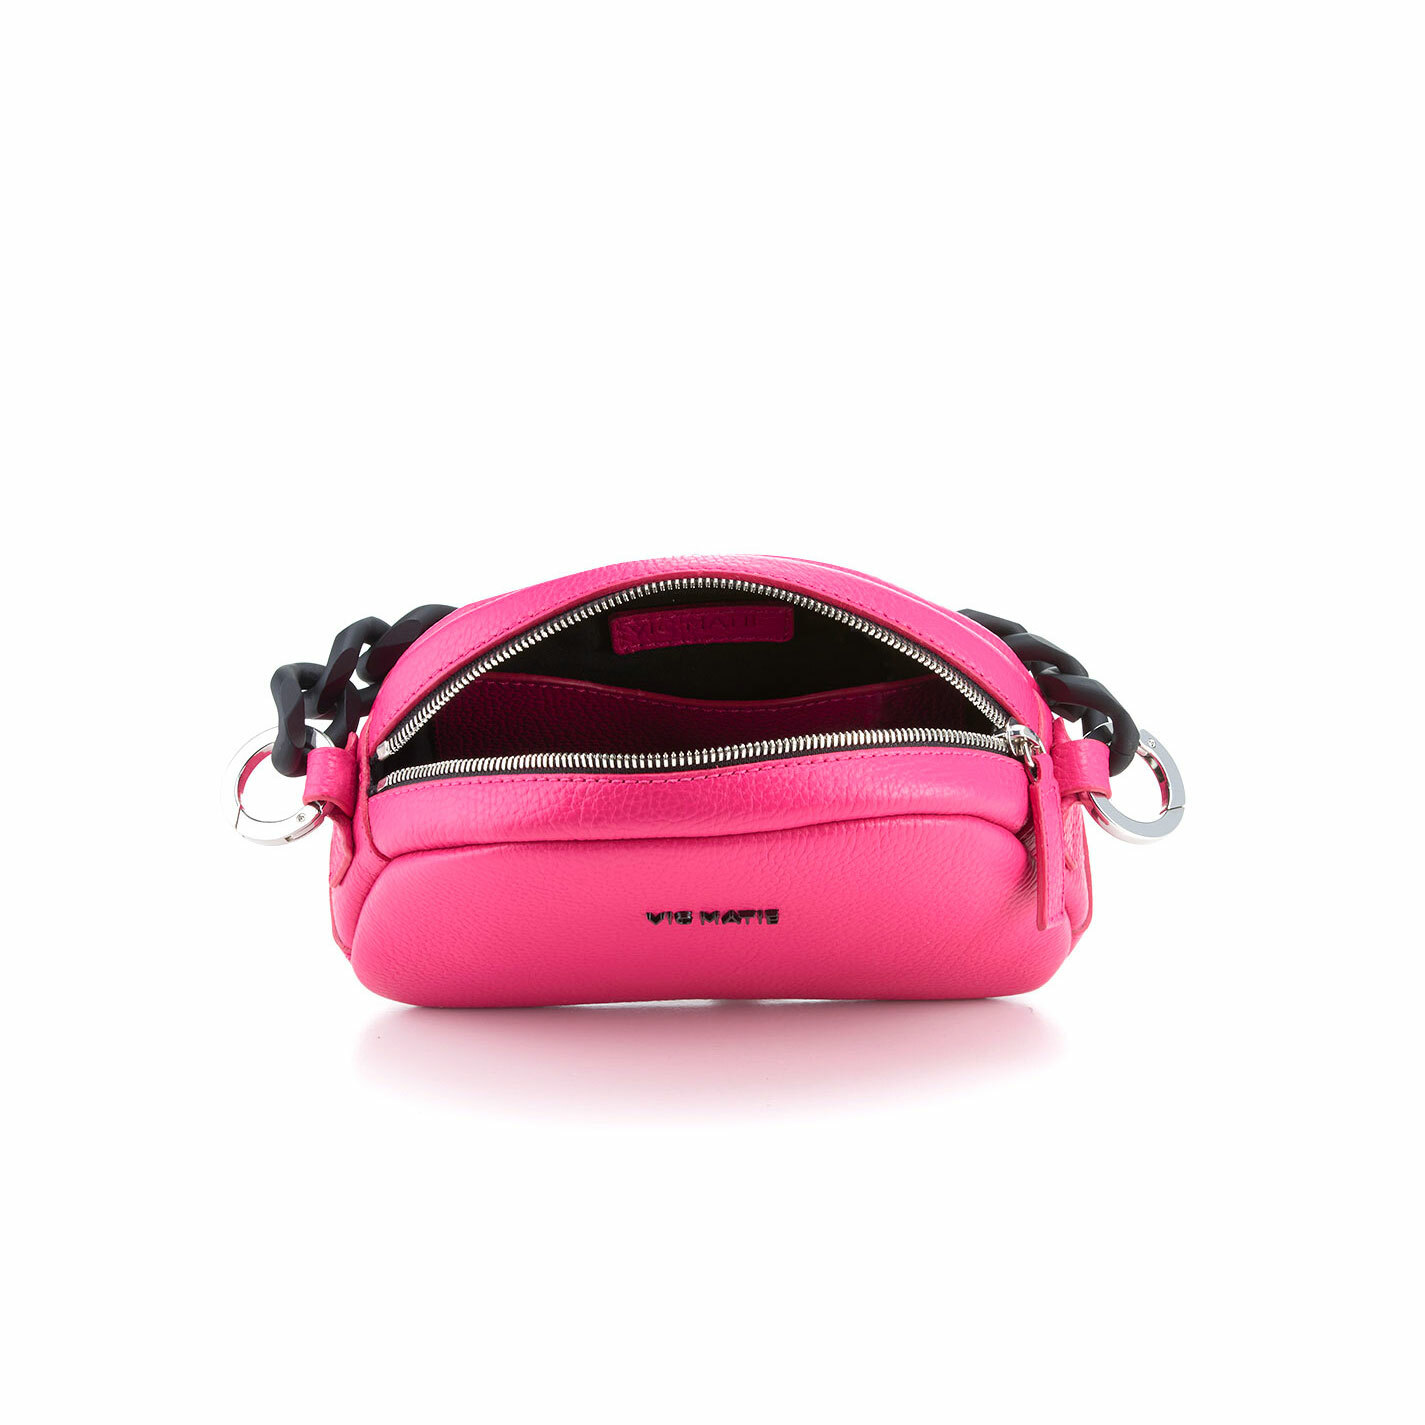 Babs Small<br />Mini magenta leather bag with black chain